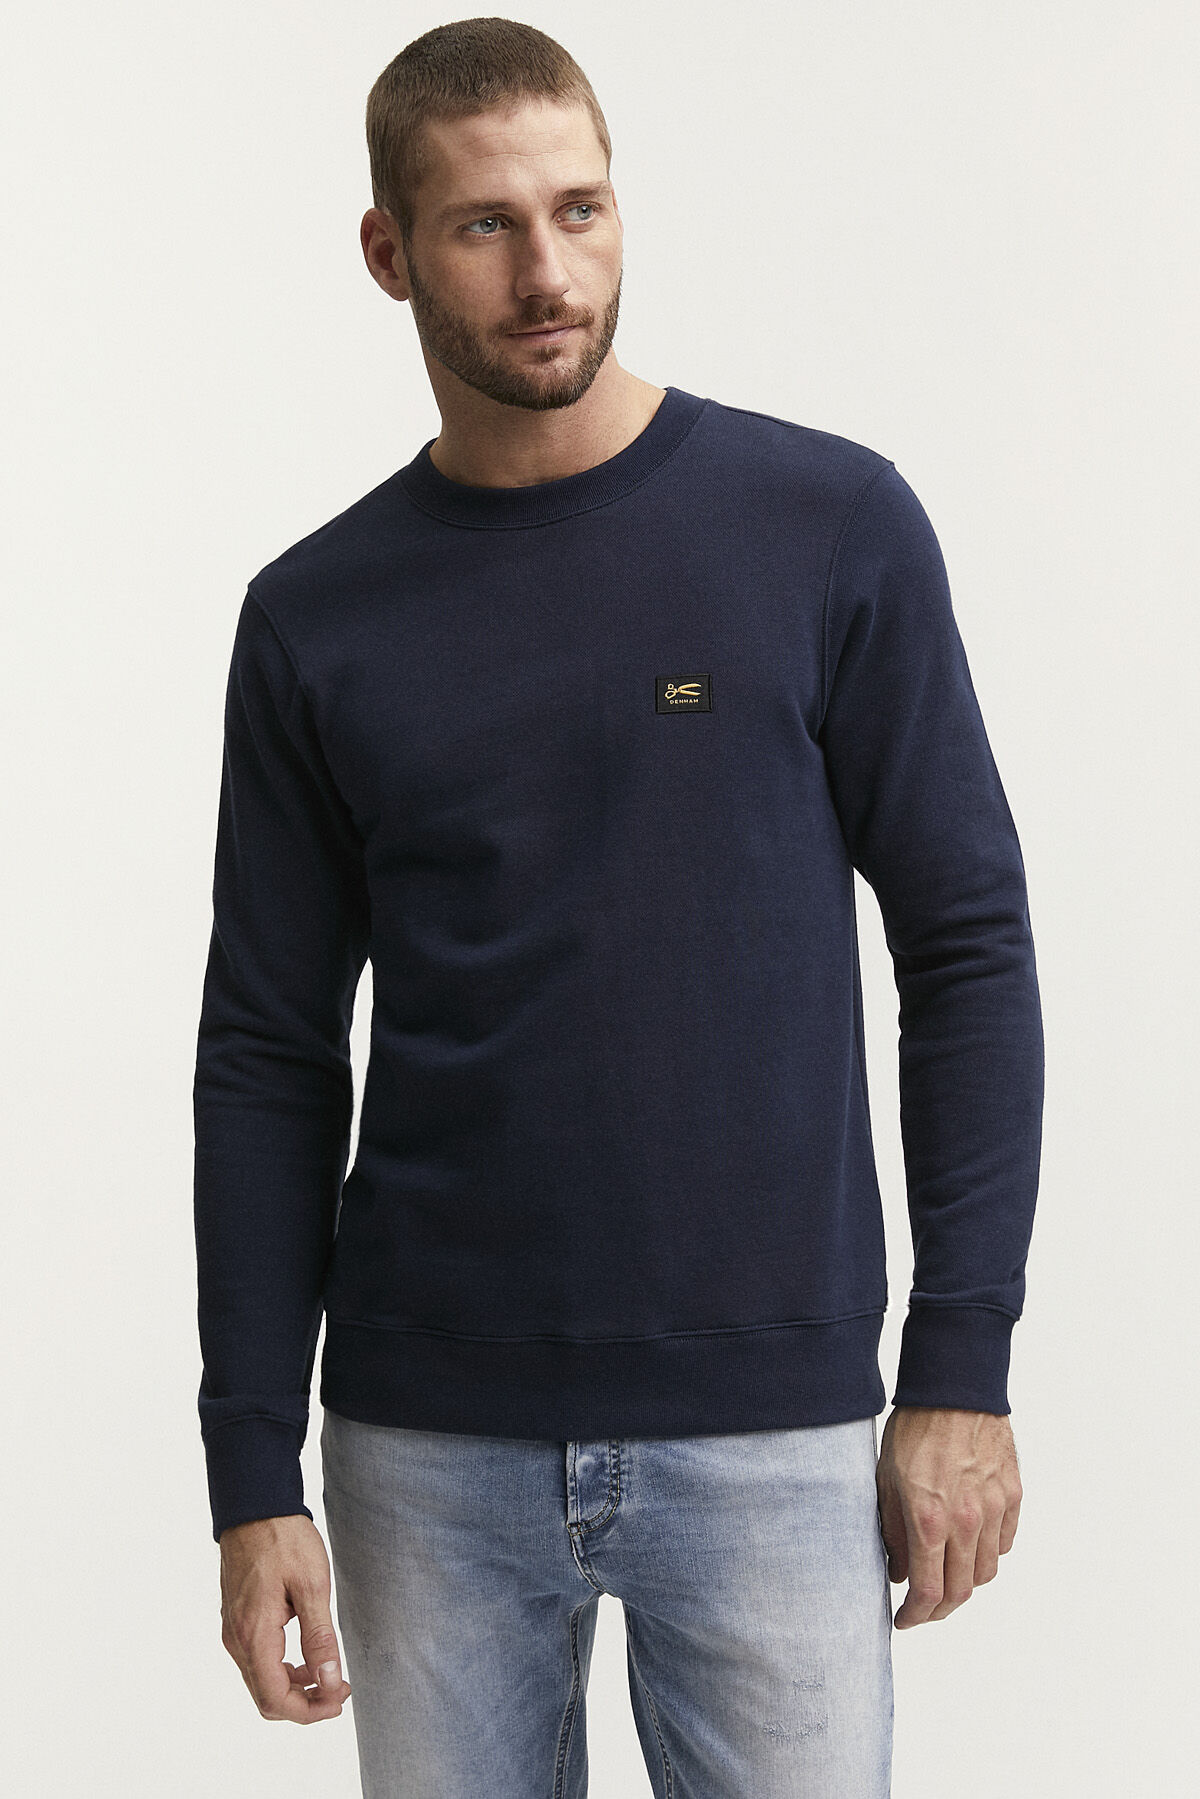 WILSON SWEAT Premium cotton sweat - Regular Fit